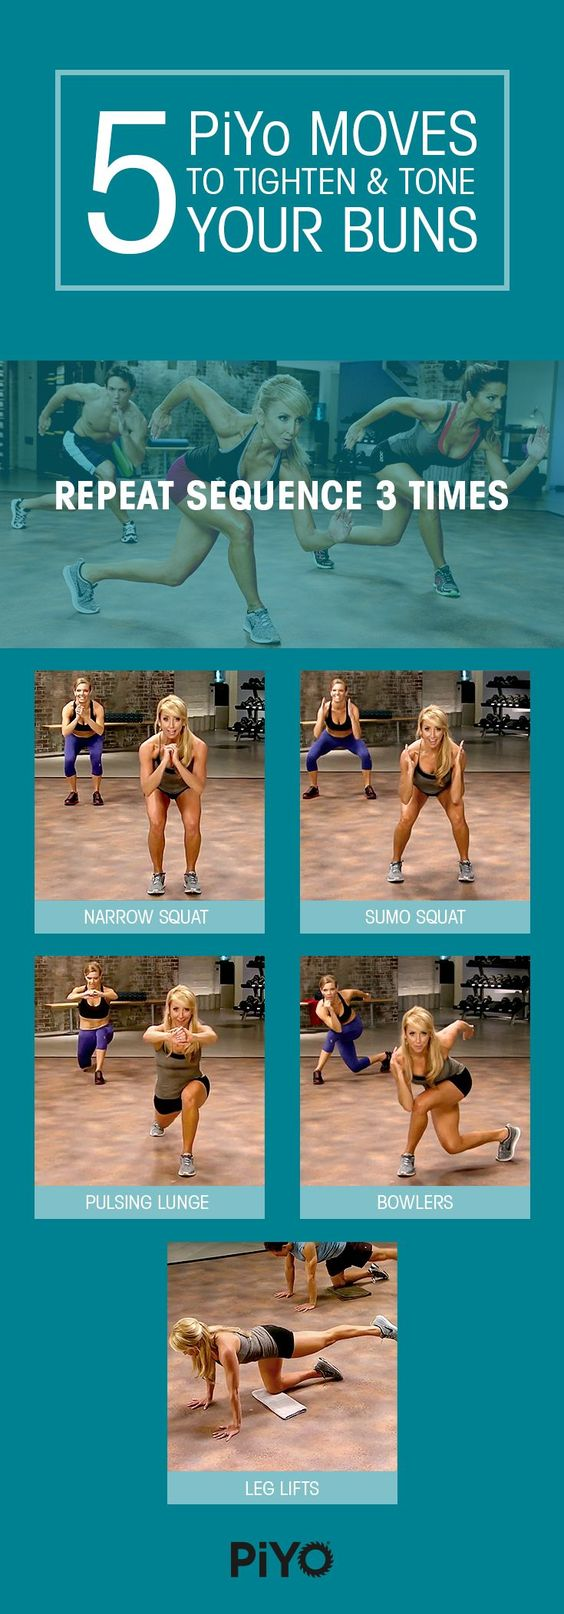 more PiYo moves to tighten and tone your Buns